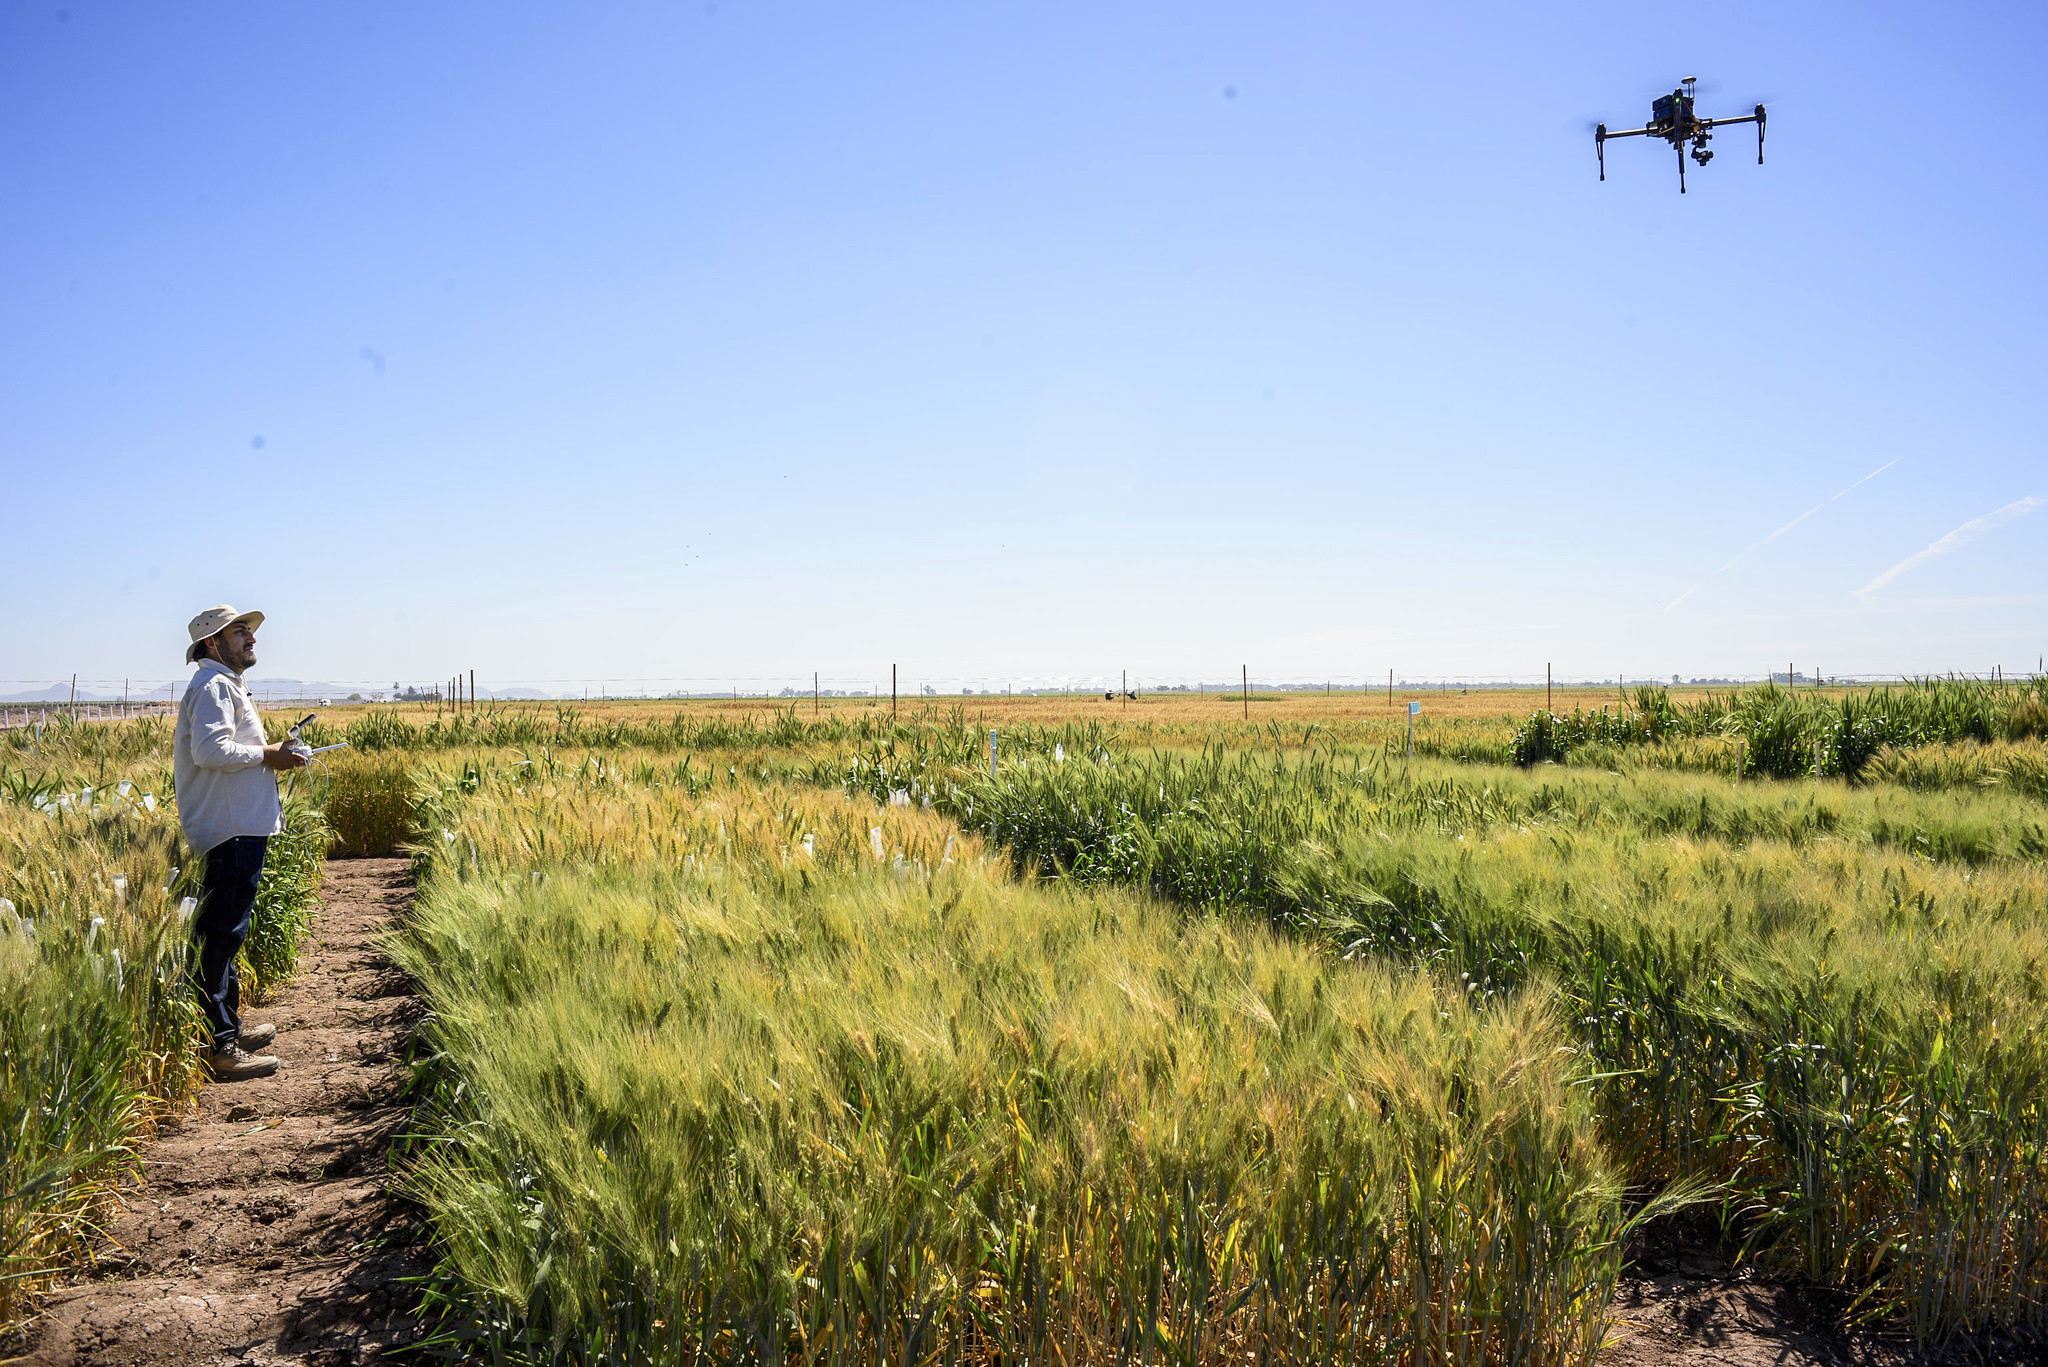 CIMMYT scientist Francisco Pinto operates a drone over wheat plots at CIMMYT's experimental station in Ciudad Obregon, Mexico. (Photo: Alfonso Cortés/CIMMYT)